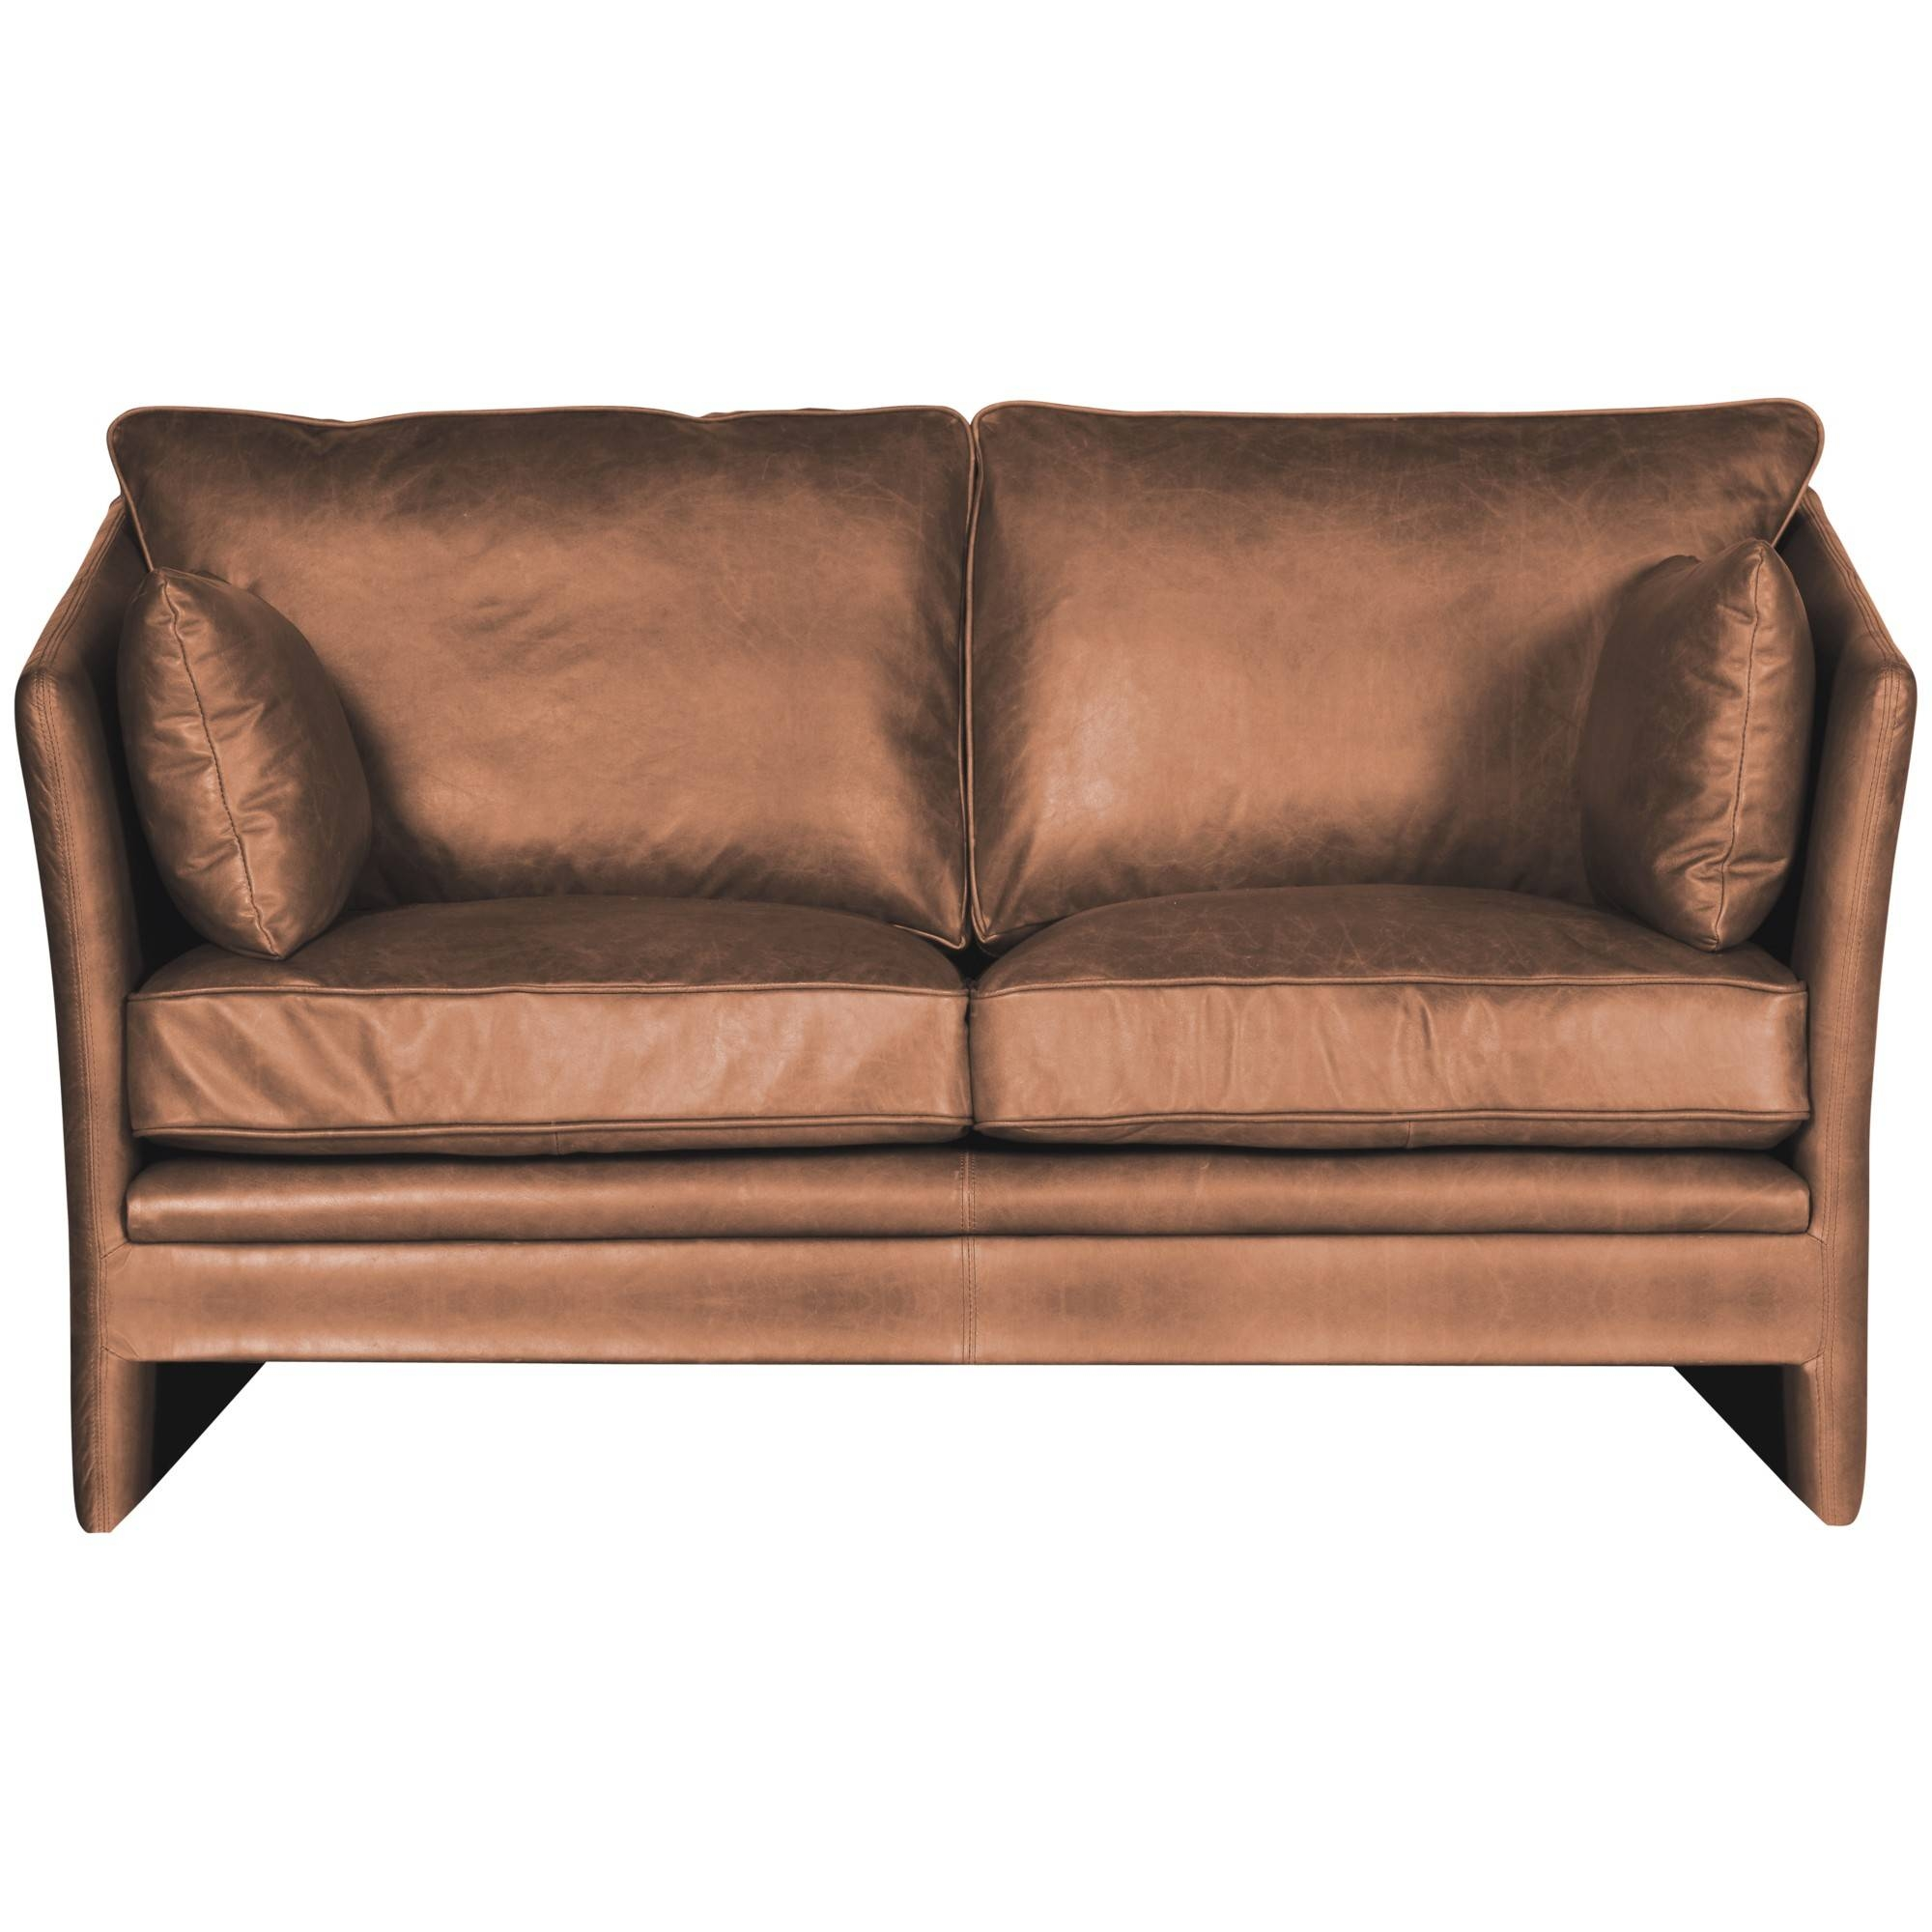 Aniline Leather Sofa With Concept Picture 8045 | Kengire with regard to Aniline Leather Sofas (Image 6 of 30)